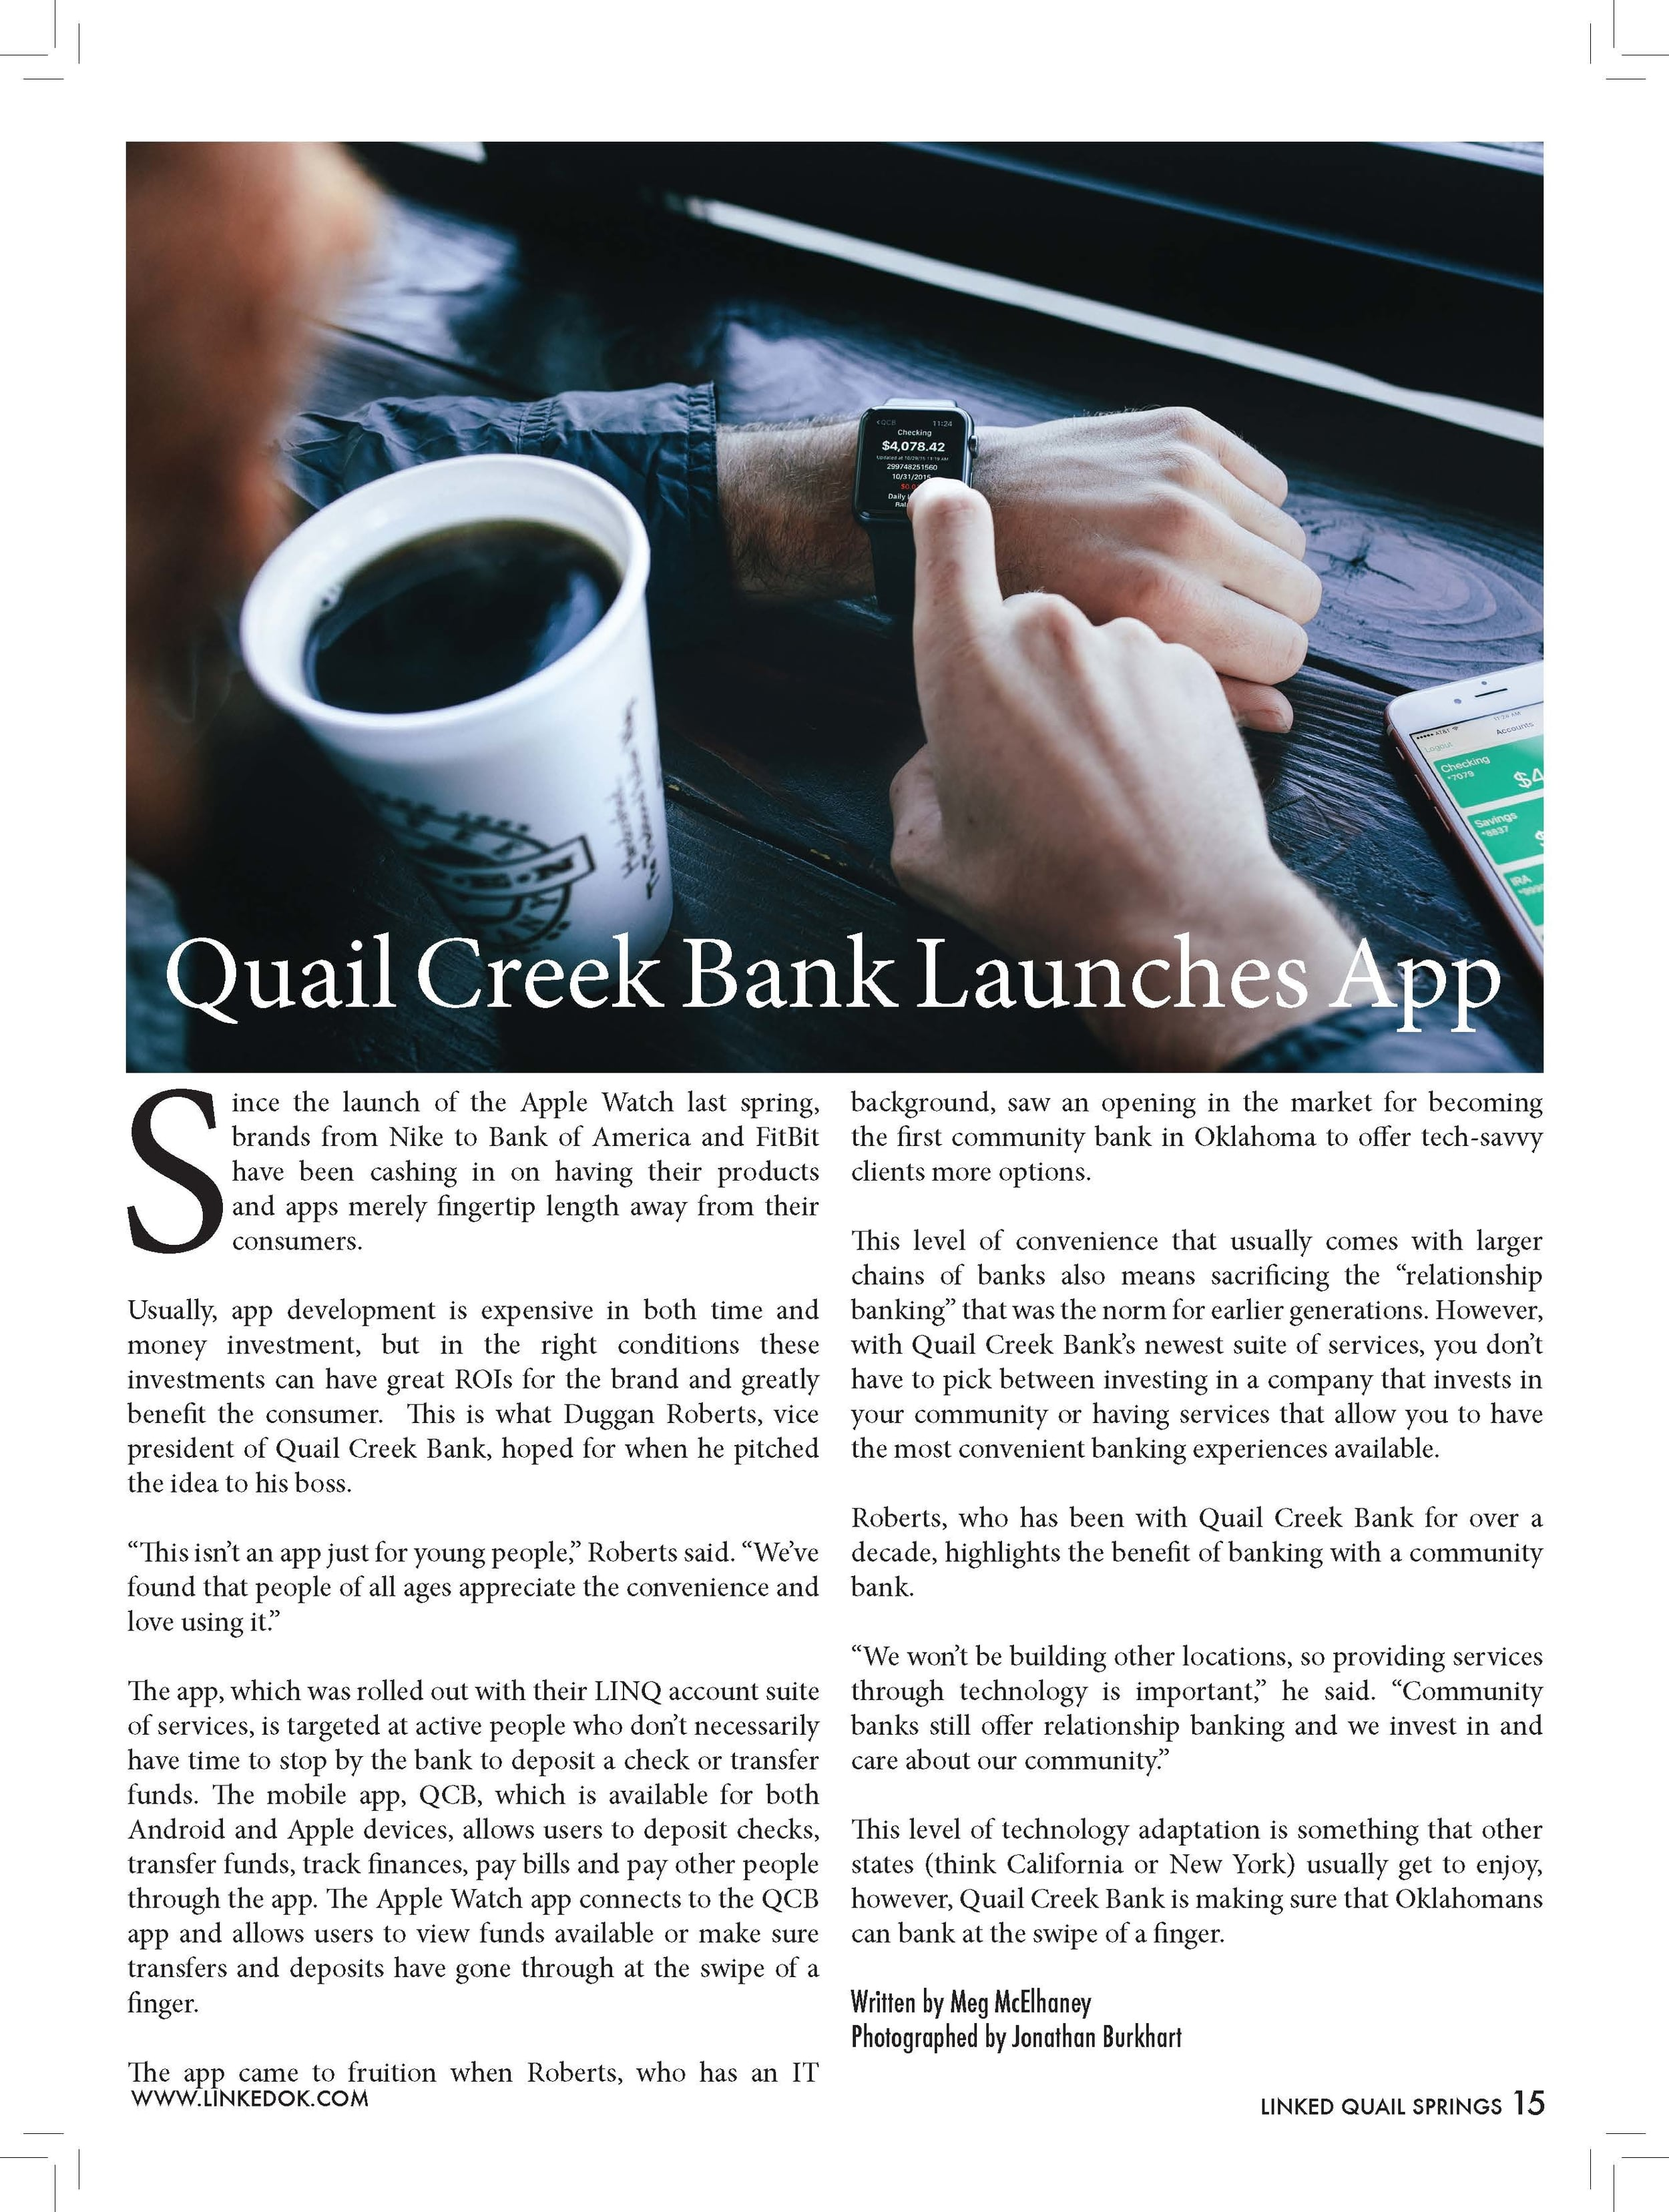 "Quail Creek Bank Launches App  Since the launch of the Apple Watch last spring,  brands from Nike to Bank of America and FitBit  have been cashing in on having their products  and apps merely fingertip length away from their  consumers.  Usually, app development is expensive in both time and  money investment, but in the right conditions these  investments can have great ROIs for the brand and greatly  benefit the consumer. This is what Duggan Roberts, vice  president of Quail Creek Bank, hoped for when he pitched  the idea to his boss.  ""This isn't an app just for young people,"" Roberts said. ""We've  found that people of all ages appreciate the convenience and  love using it.""  The app, which was rolled out with their LINQ account suite  of services, is targeted at active people who don't necessarily  have time to stop by the bank to deposit a check or transfer  funds. The mobile app, QCB, which is available for both  Android and Apple devices, allows users to deposit checks,  transfer funds, track finances, pay bills and pay other people  through the app. The Apple Watch app connects to the QCB  app and allows users to view funds available or make sure  transfers and deposits have gone through at the swipe of a  finger.  The app came to fruition when Roberts, who has an IT  background, saw an opening in the market for becoming  the first community bank in Oklahoma to offer tech-savvy  clients more options.  This level of convenience that usually comes with larger  chains of banks also means sacrificing the ""relationship  banking"" that was the norm for earlier generations. However,  with Quail Creek Bank's newest suite of services, you don't  have to pick between investing in a company that invests in  your community or having services that allow you to have  the most convenient banking experiences available.  Roberts, who has been with Quail Creek Bank for over a  decade, highlights the benefit of banking with a community  bank.  ""We won't be building other locations, so providing services  through technology is important,"" he said. ""Community  banks still offer relationship banking and we invest in and  care about our community.""  This level of technology adaptation is something that other  states (think California or New York) usually get to enjoy,  however, Quail Creek Bank is making sure that Oklahomans  can bank at the swipe of a finger.  Written by Meg McElhaney  Photographed by Jonathan Burkhart"